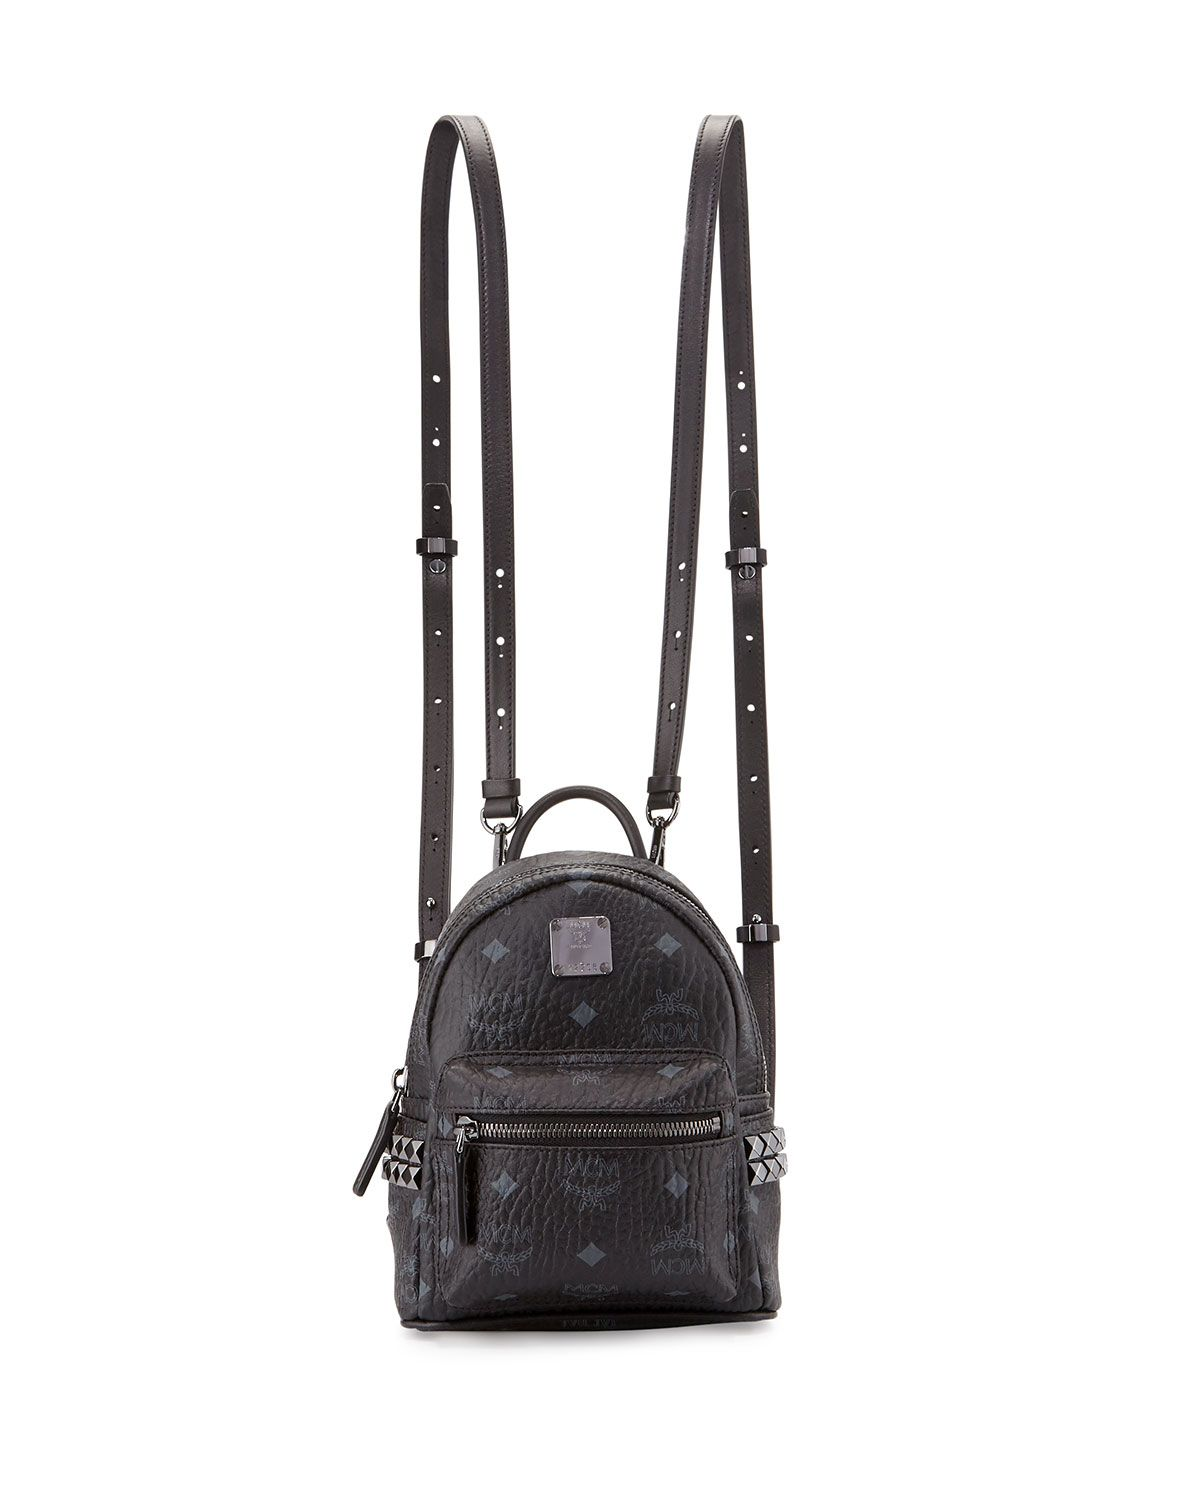 21e52777f Stark Side-Stud X-Mini Backpack, Black - MCM | *Luggage & Bags ...